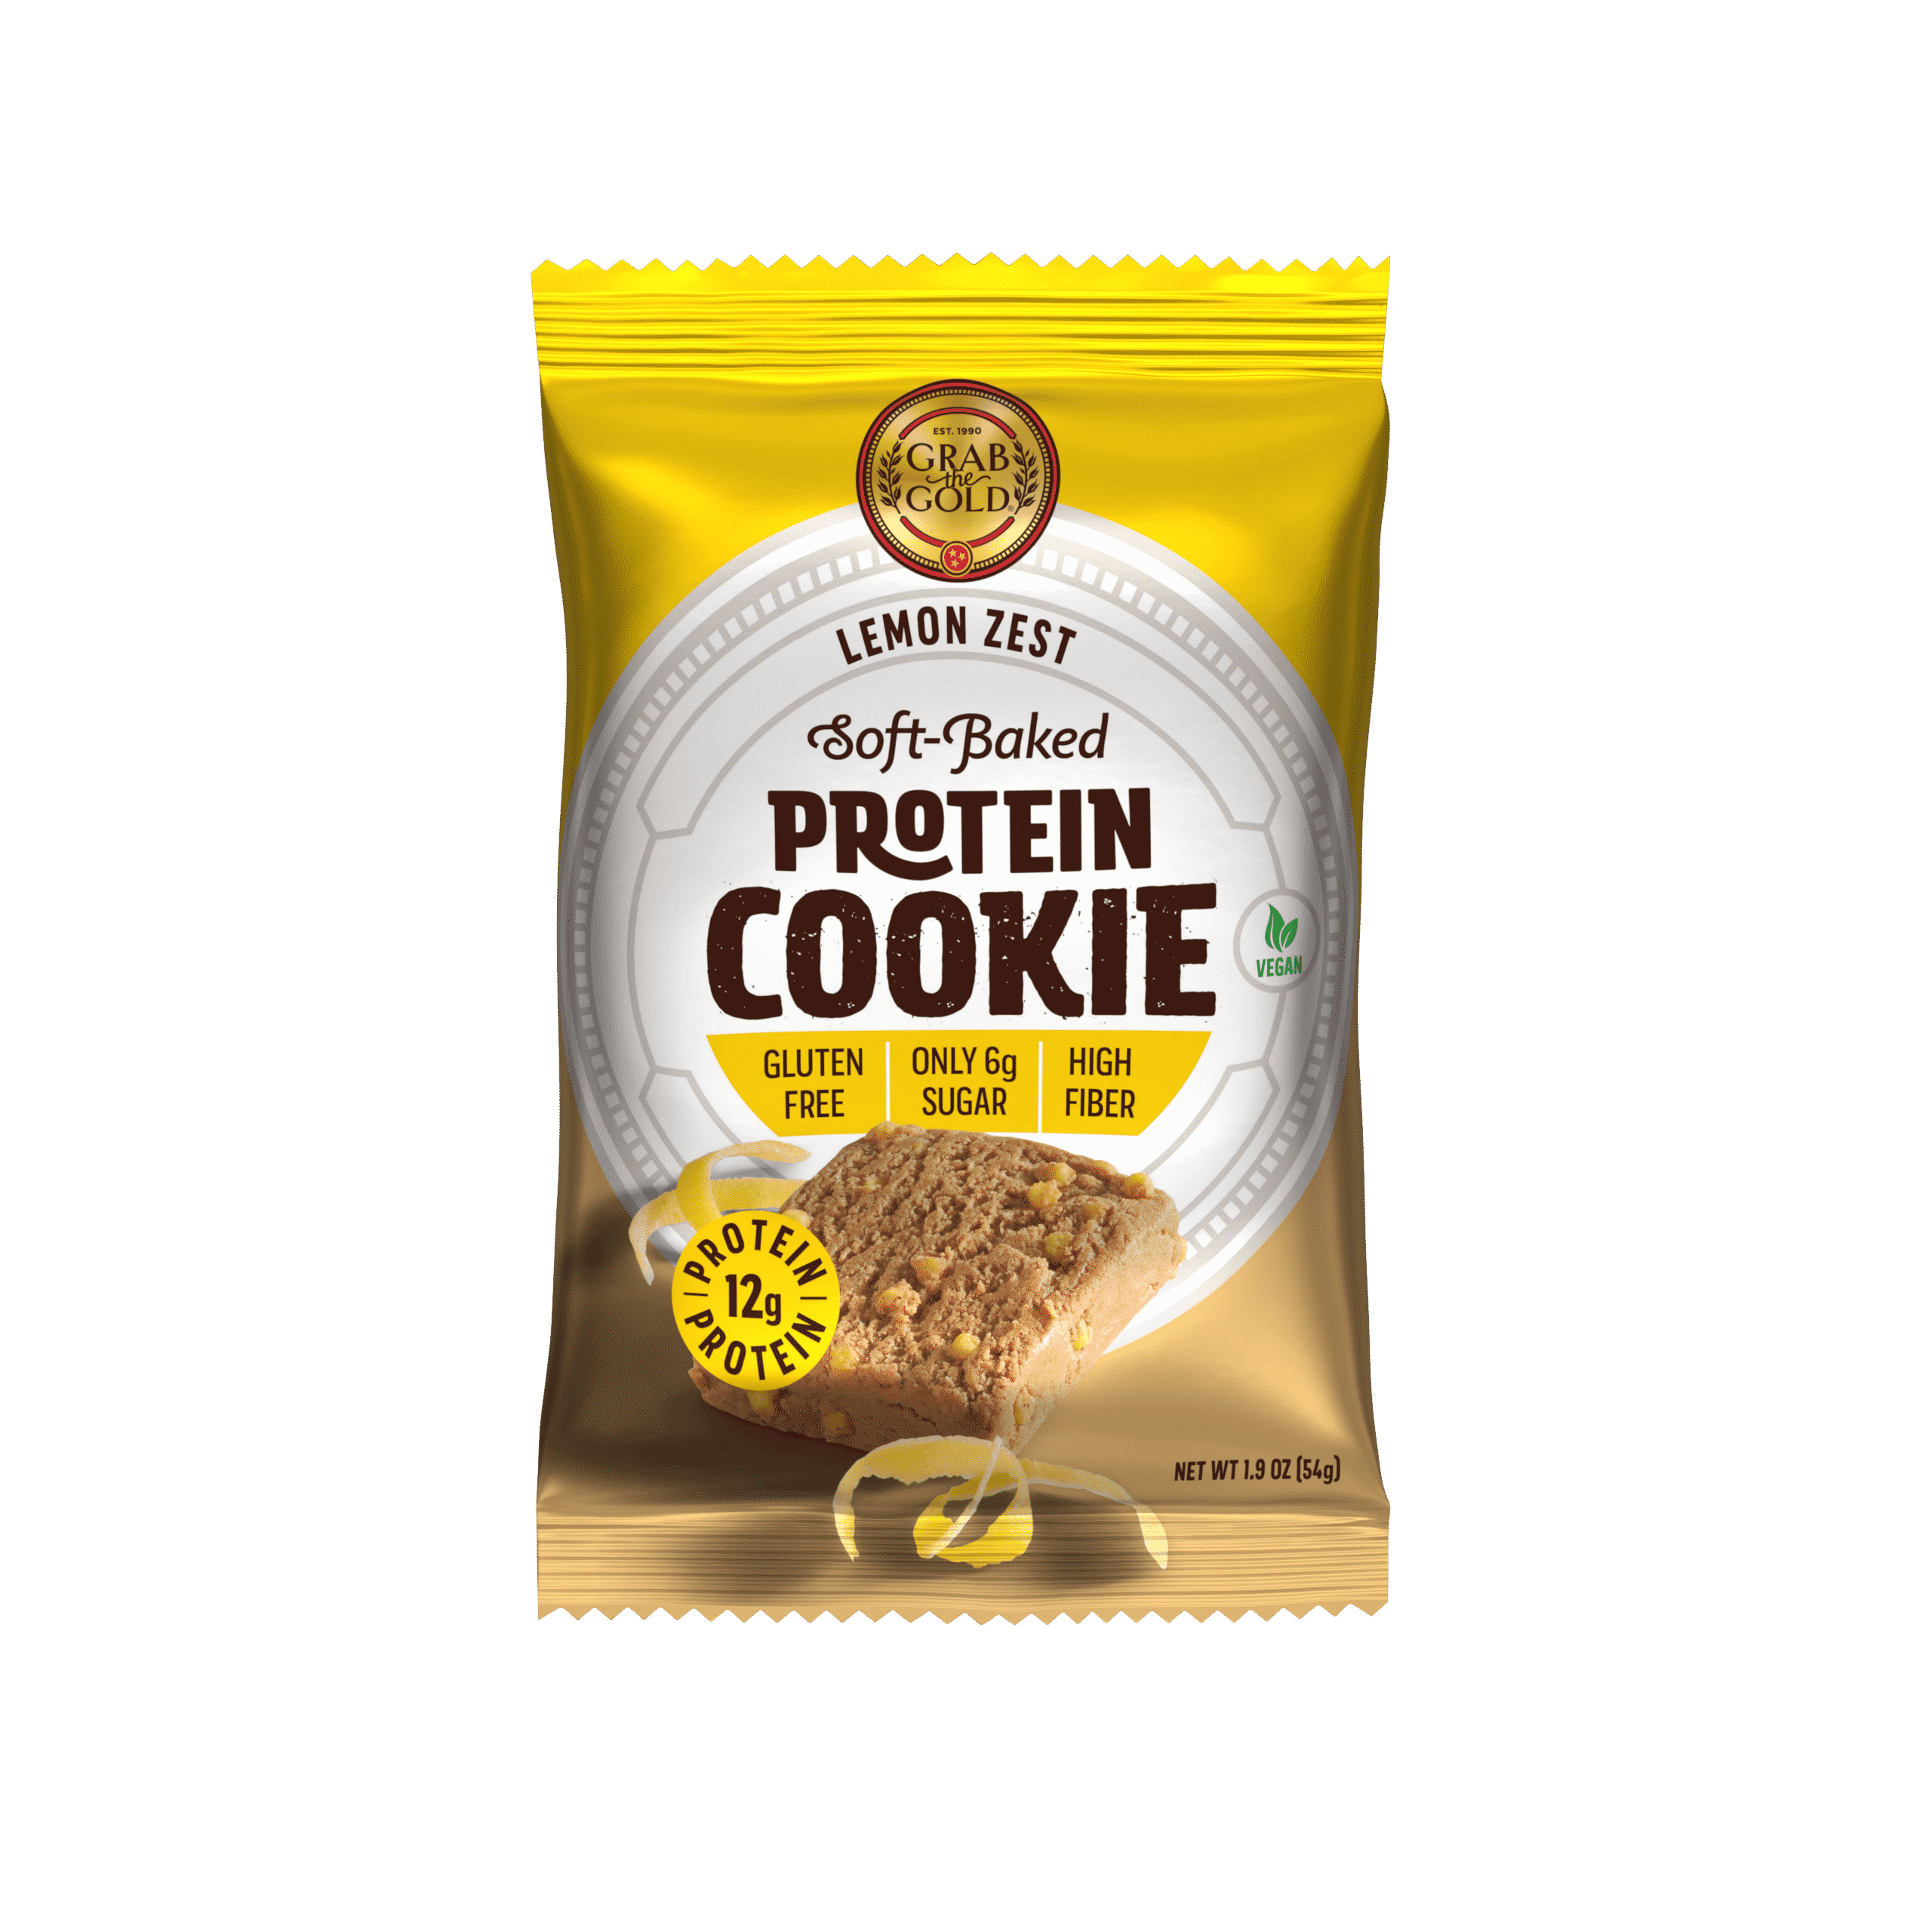 Grab The Gold Protein Cookie LMZ Wrapper Rendered 07.20